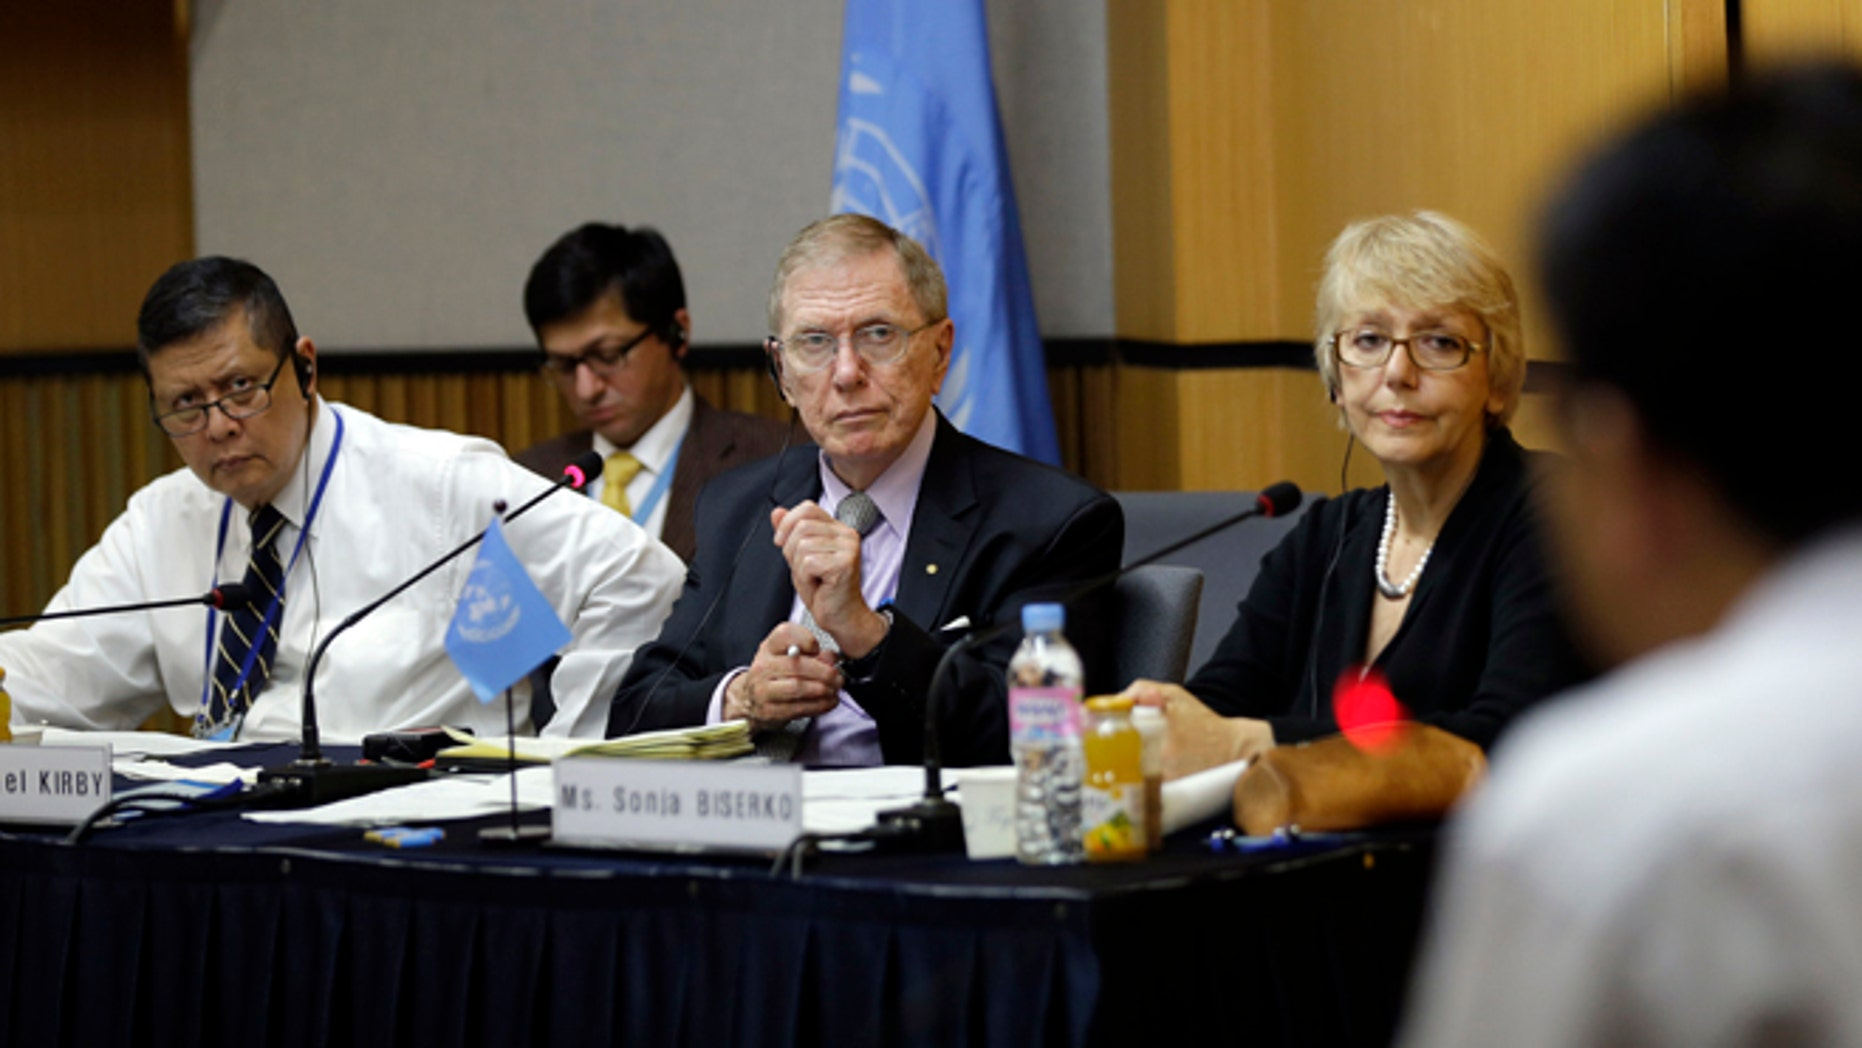 Aug. 21, 2013: In this photo, Michael Donald Kirby, center, the chairman of the U.N. commission of Inquiry on human rights in North Korea, listens to Ahn Myung-chul, right, who worked as a guard and driver at several political prisoner camps in the 1990s before defecting to south, during the U.N. hearing in Seoul, South Korea.